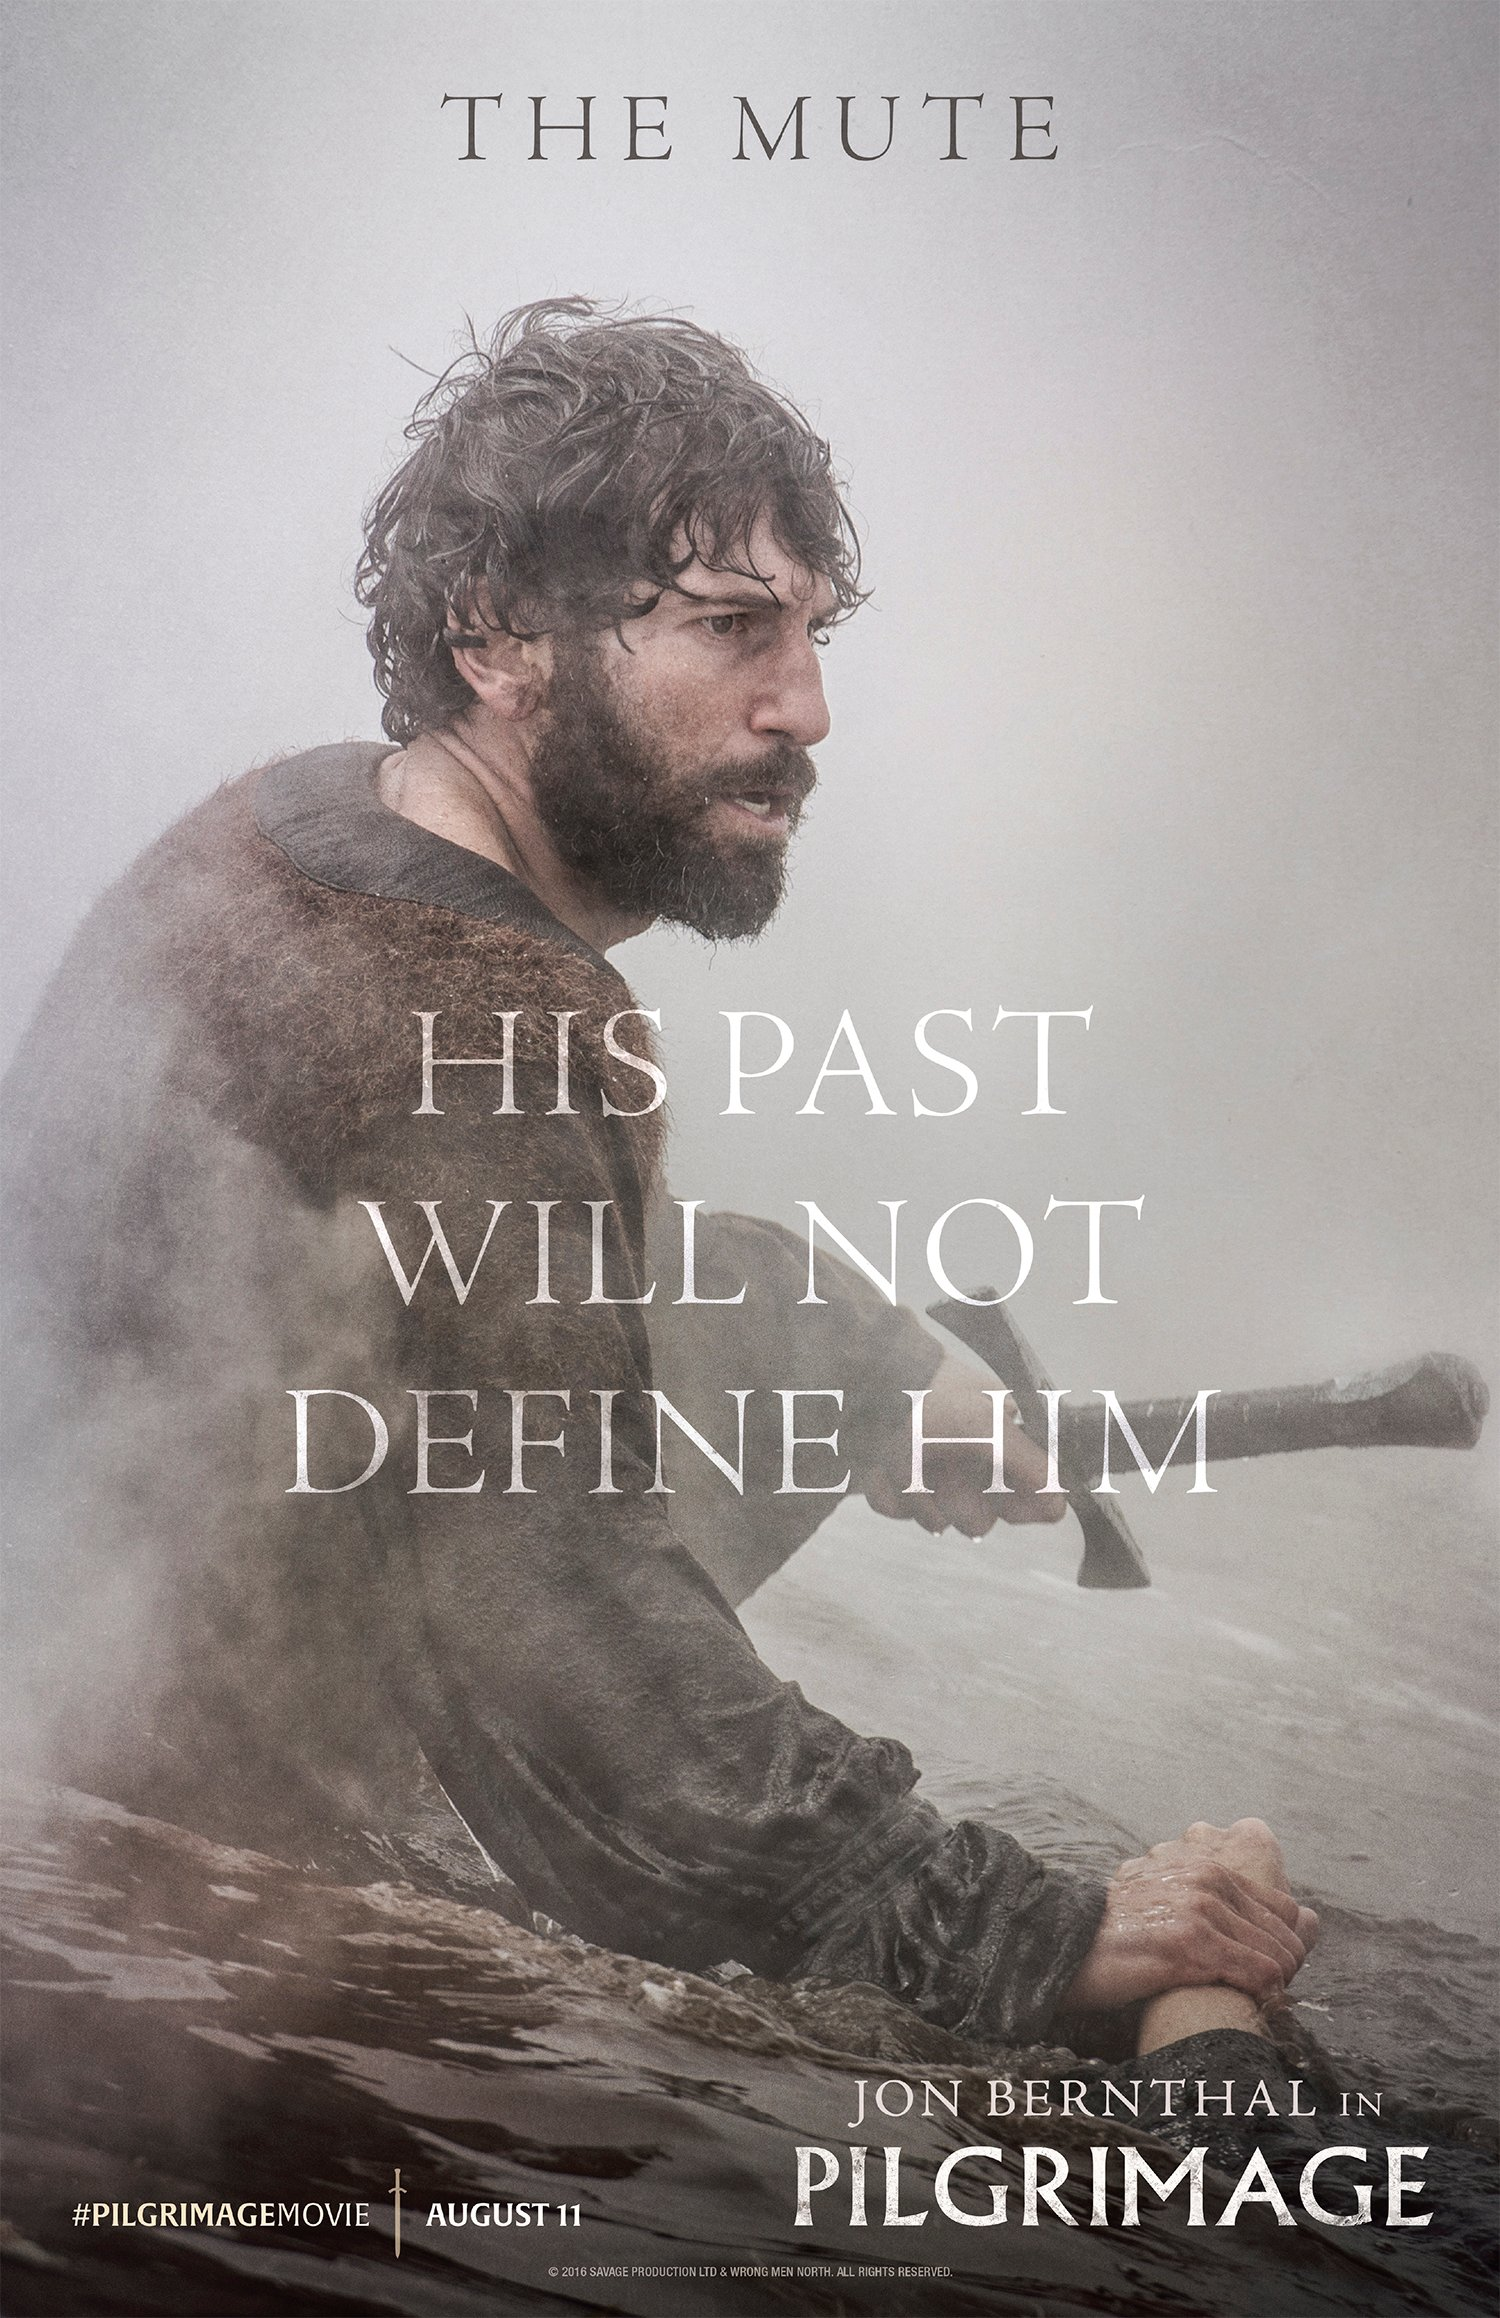 Jon Bernthal in Pilgrimage